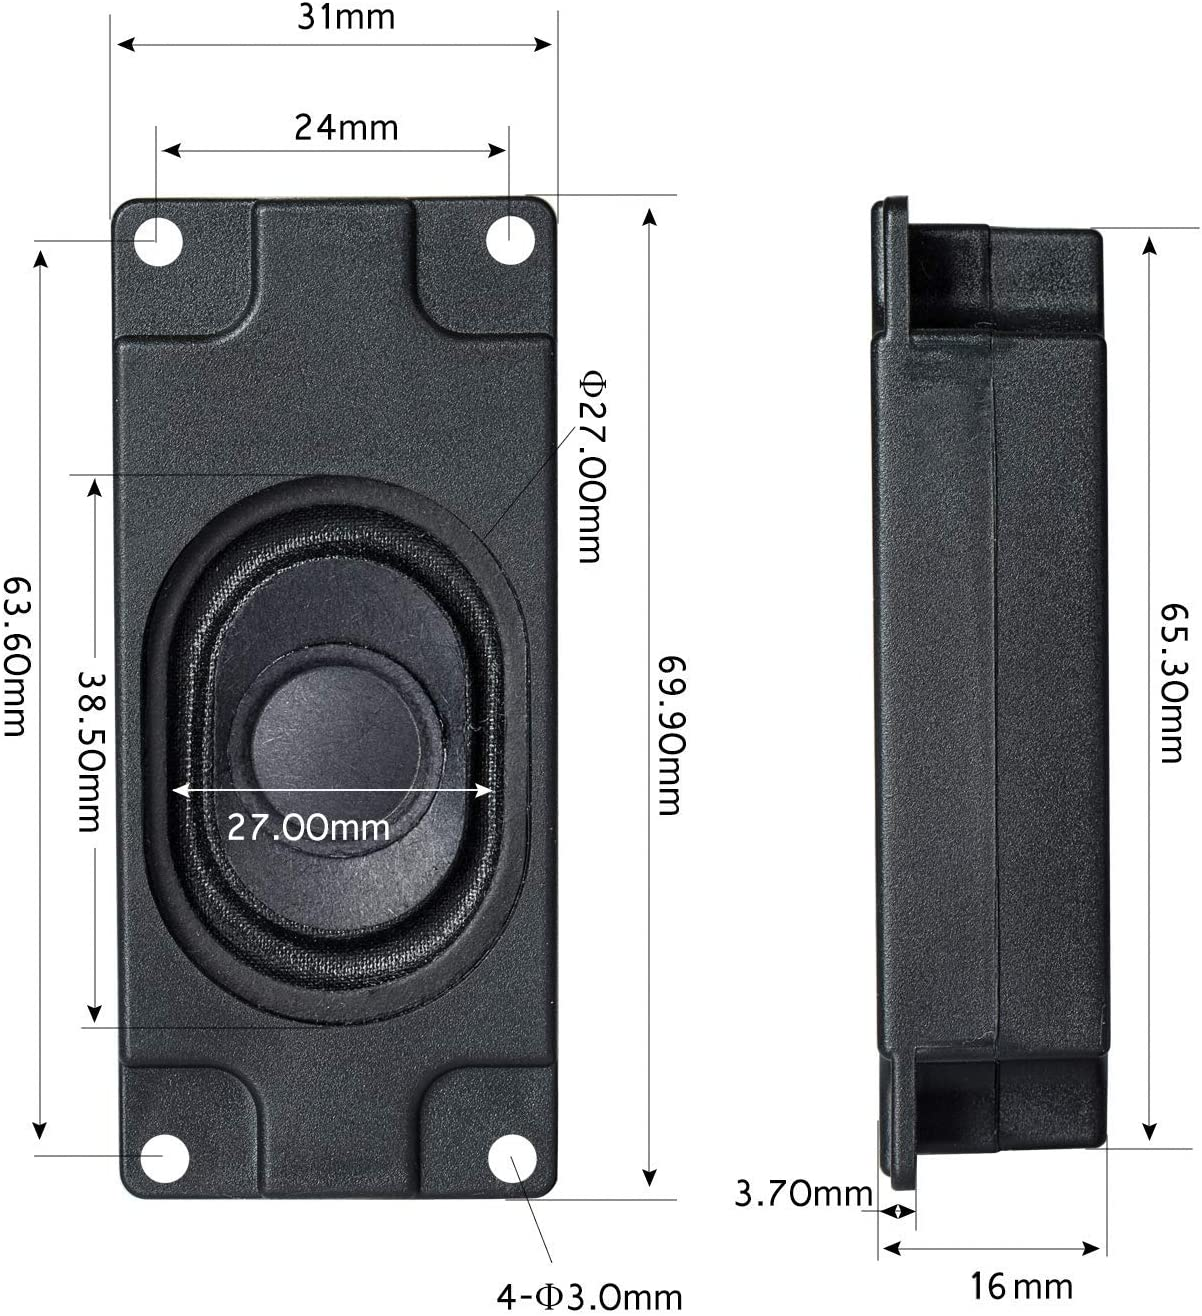 JST-PH2.0 Interface 2 Pieces Passive Small Speaker Suitable for All Kinds of Small Electronic Projects. Rectangular Black Shell 3.0W Maximum Power 8 Ohms Impedance